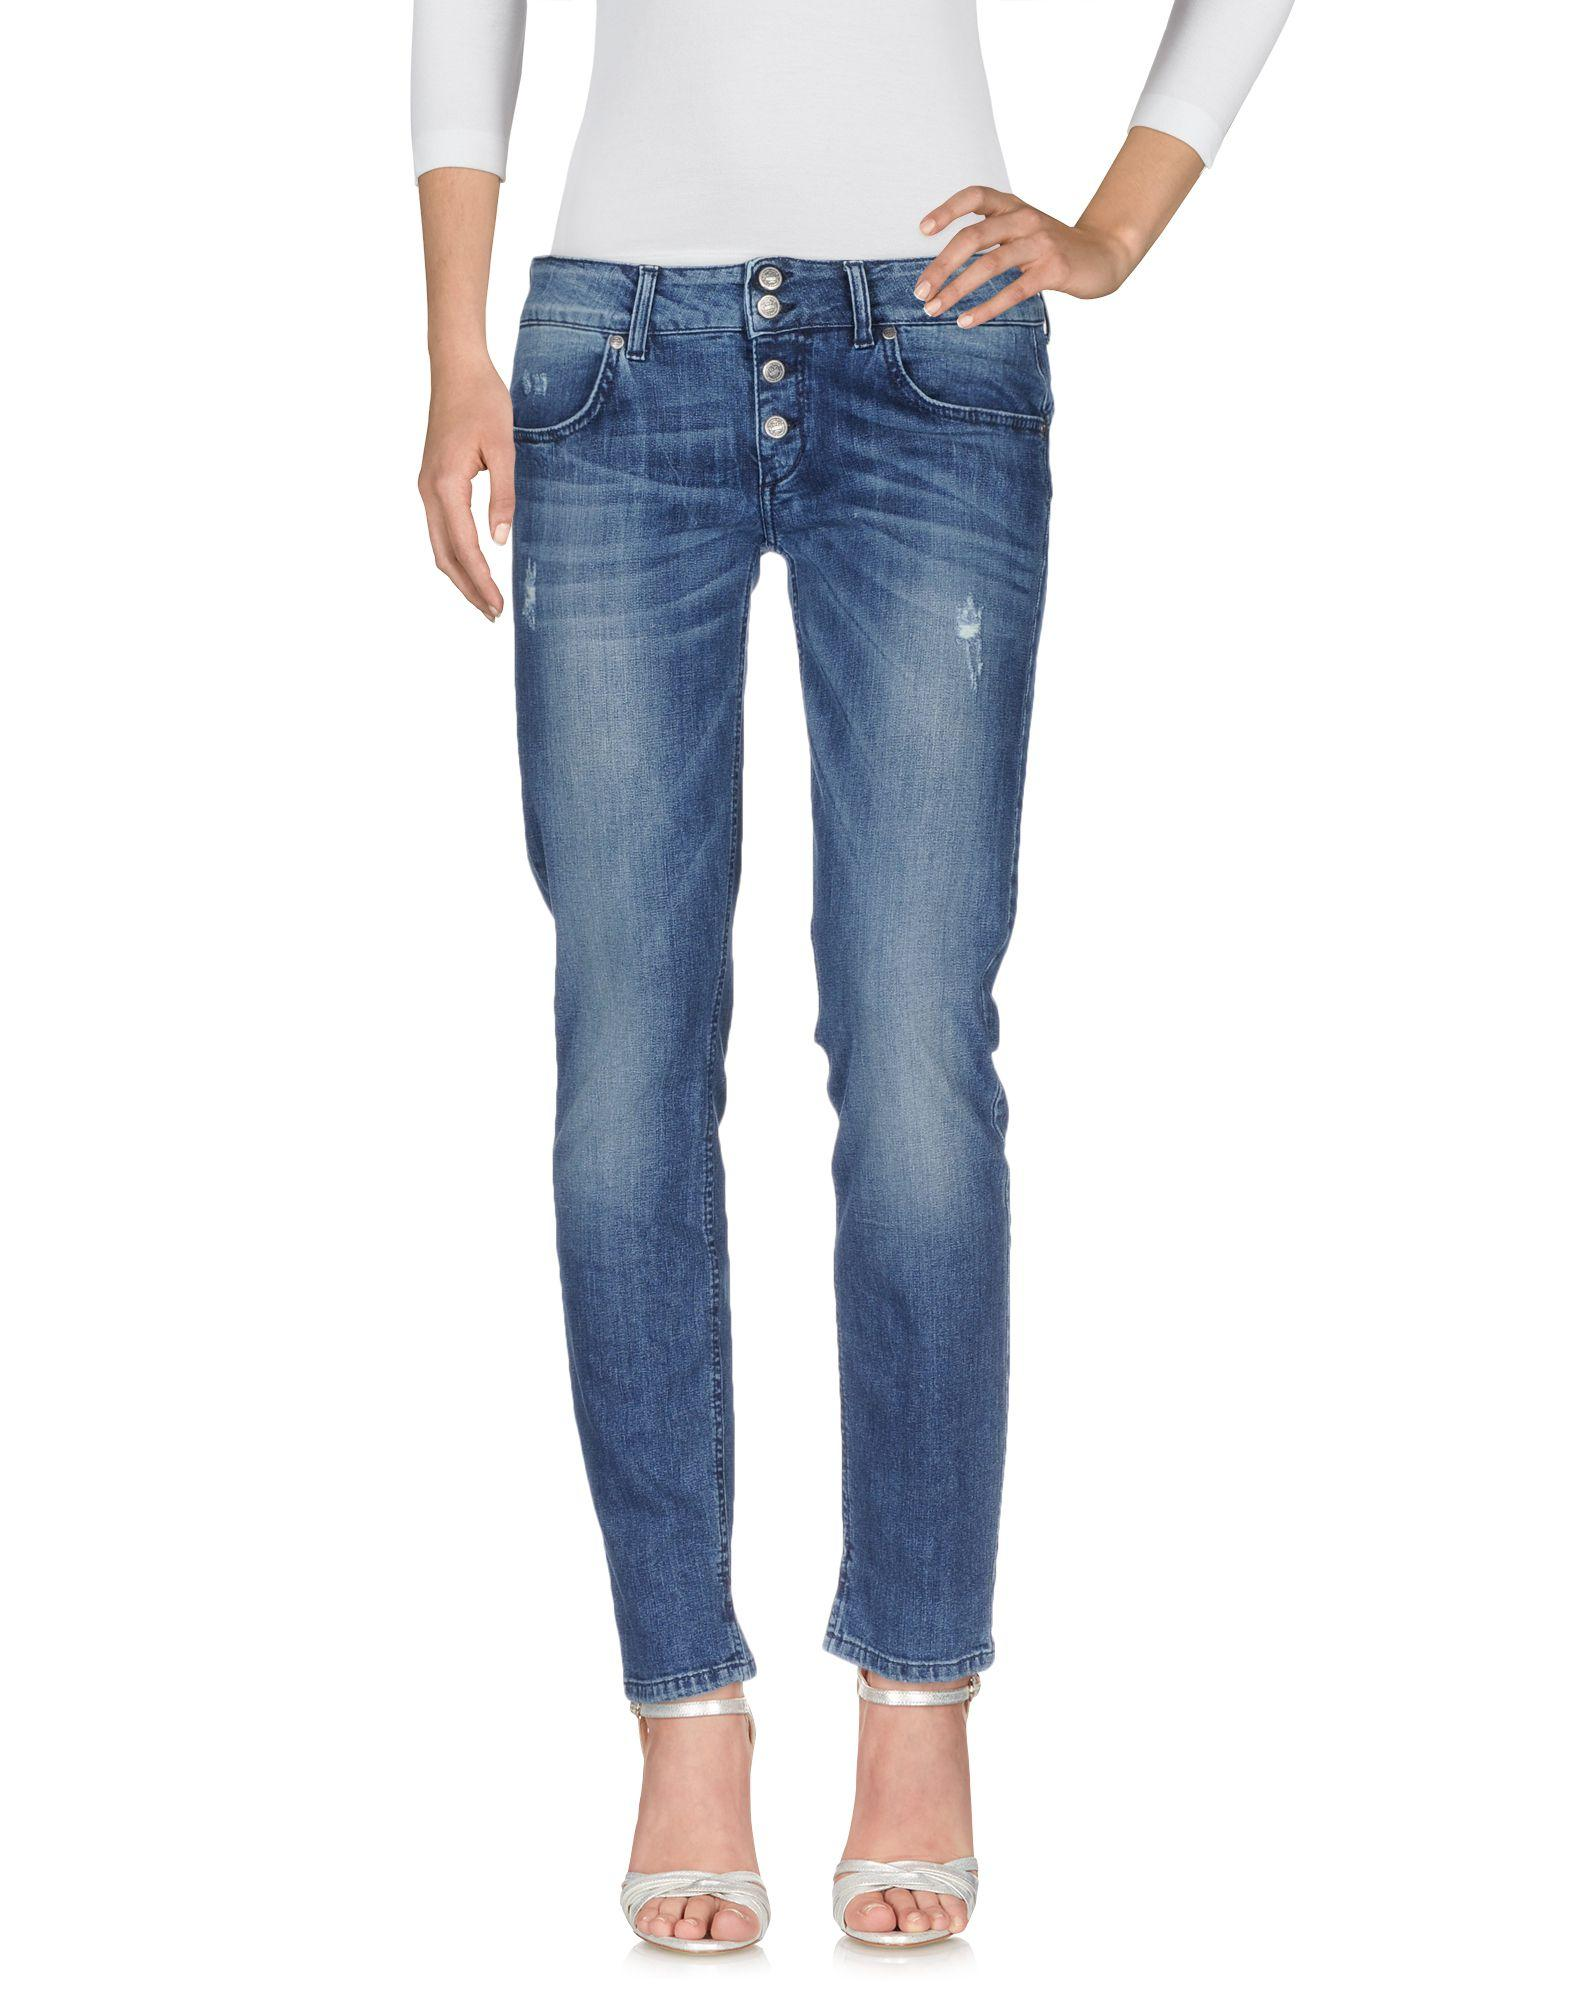 Liu •jo Jeans In Blue